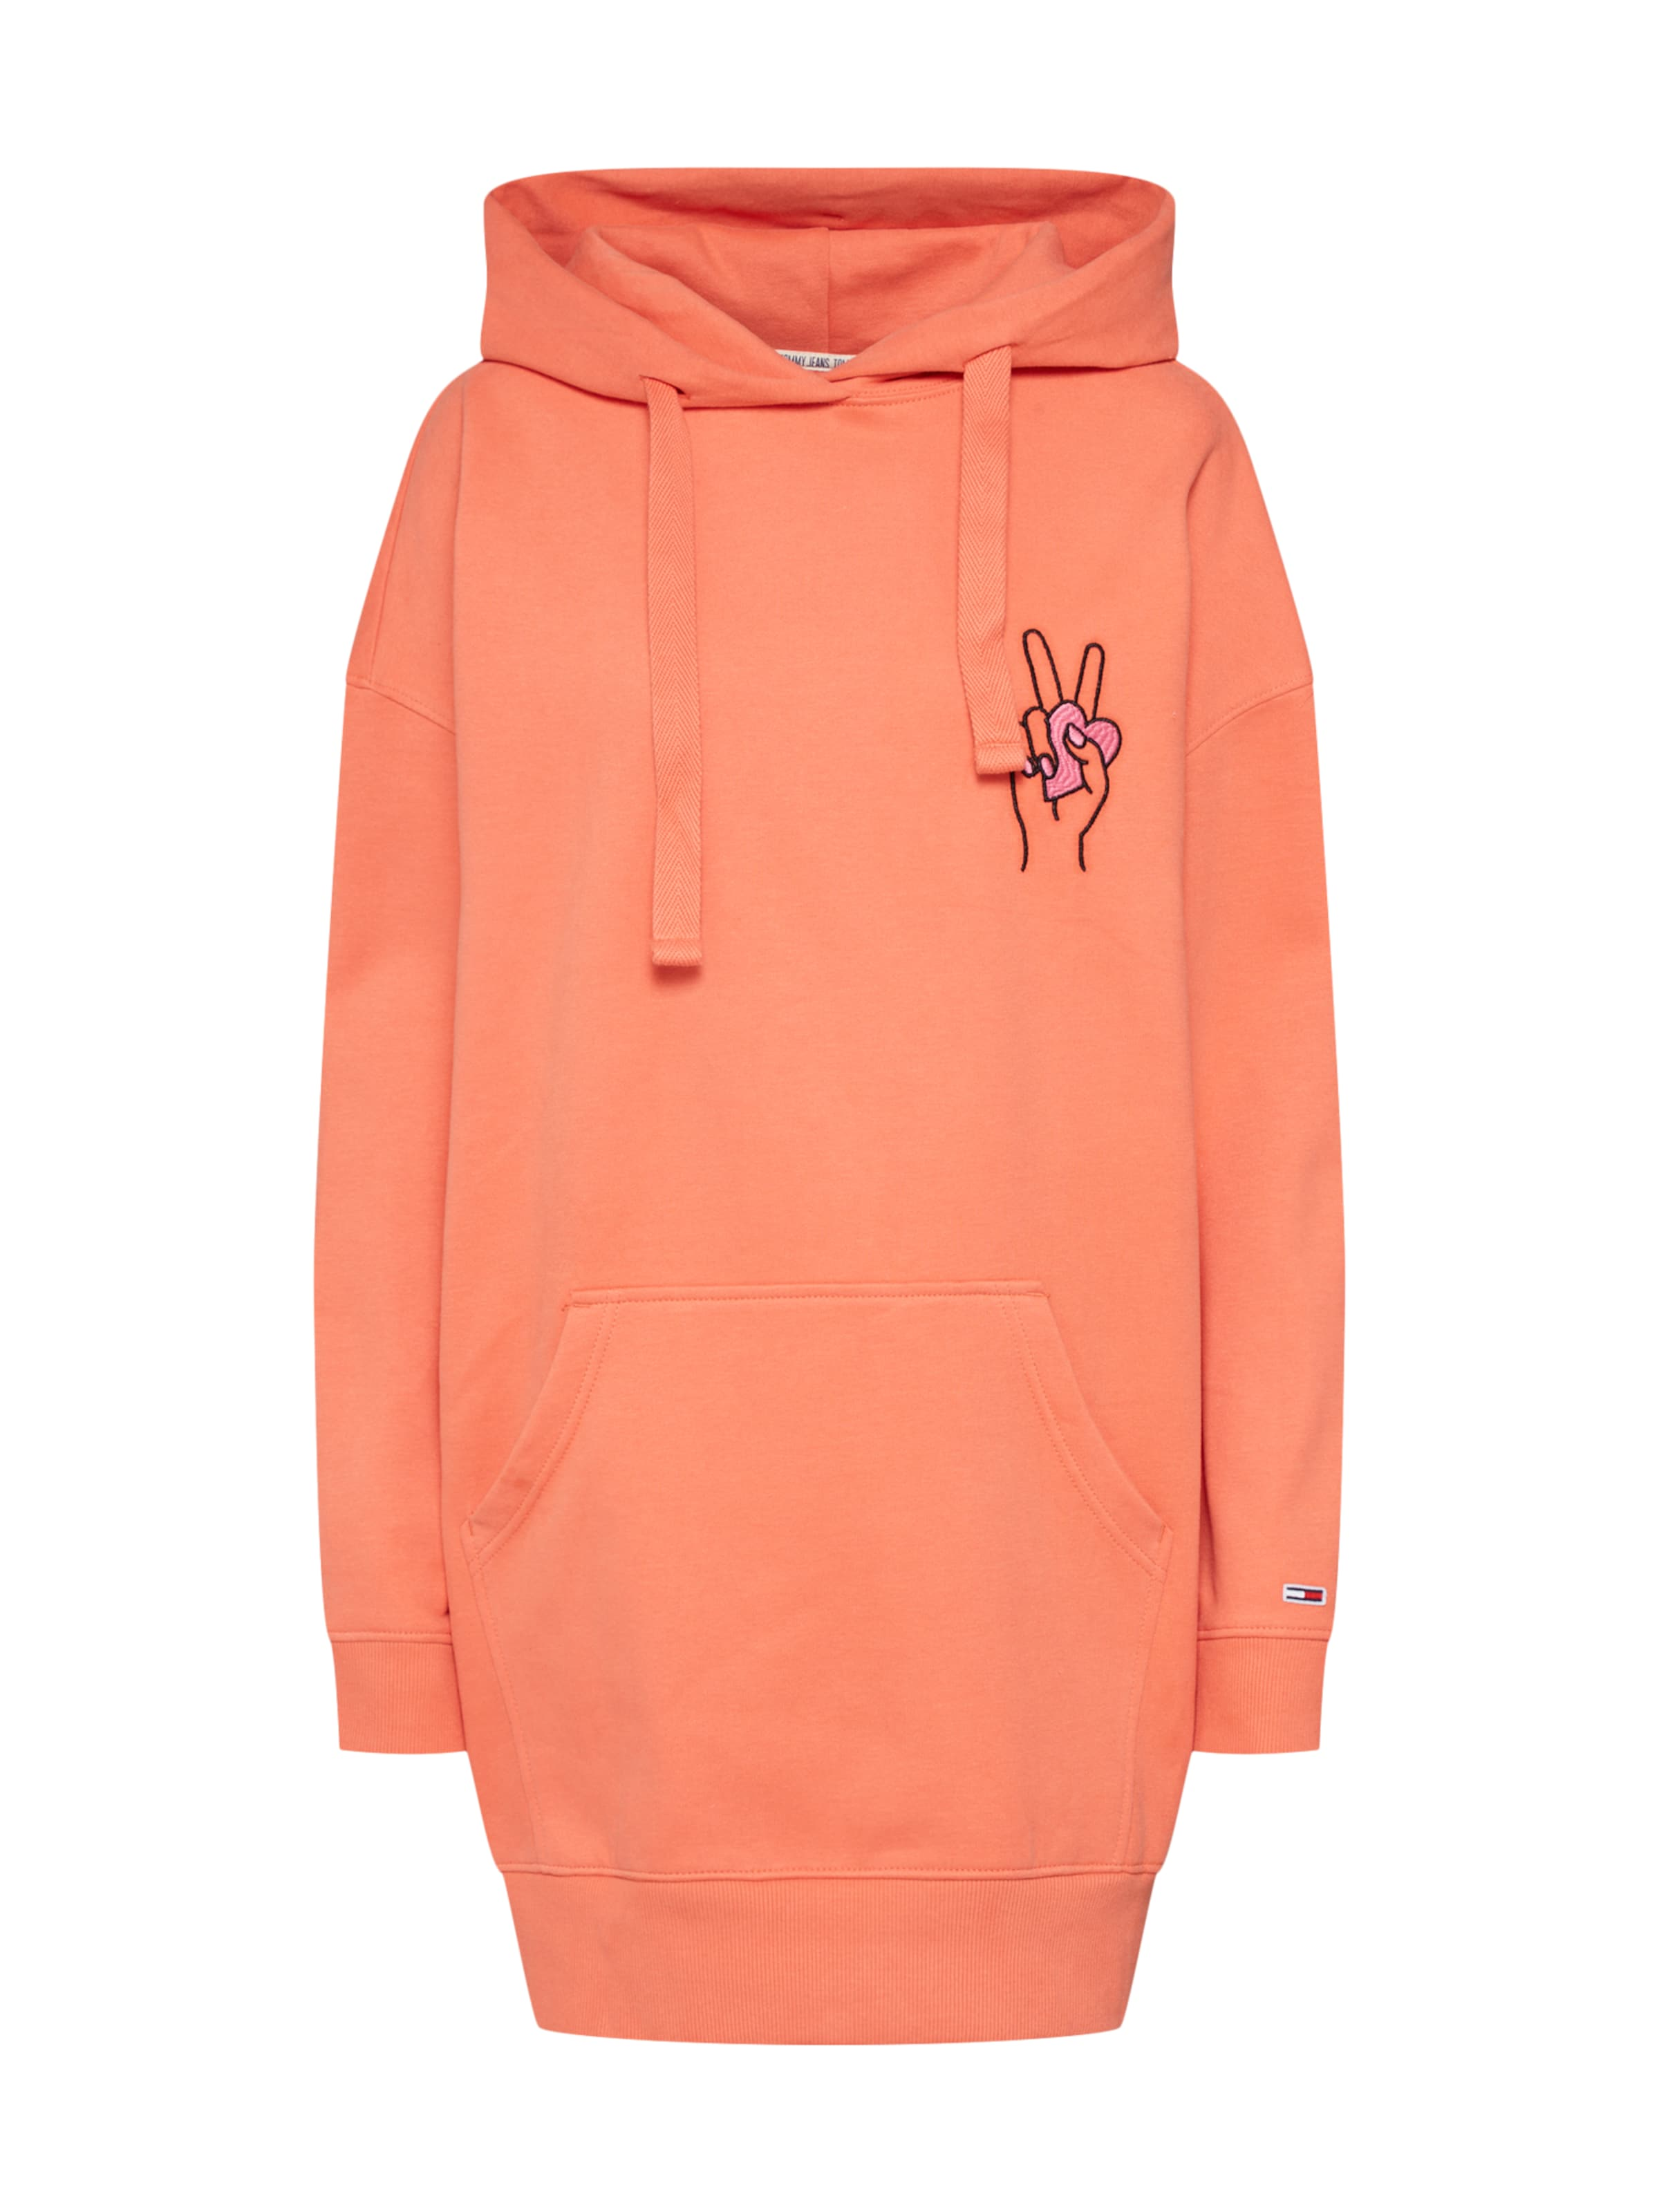 Statement Sweatkleid Hoodie' Tommy In Jeans 'bold Orange PkXOZiuT